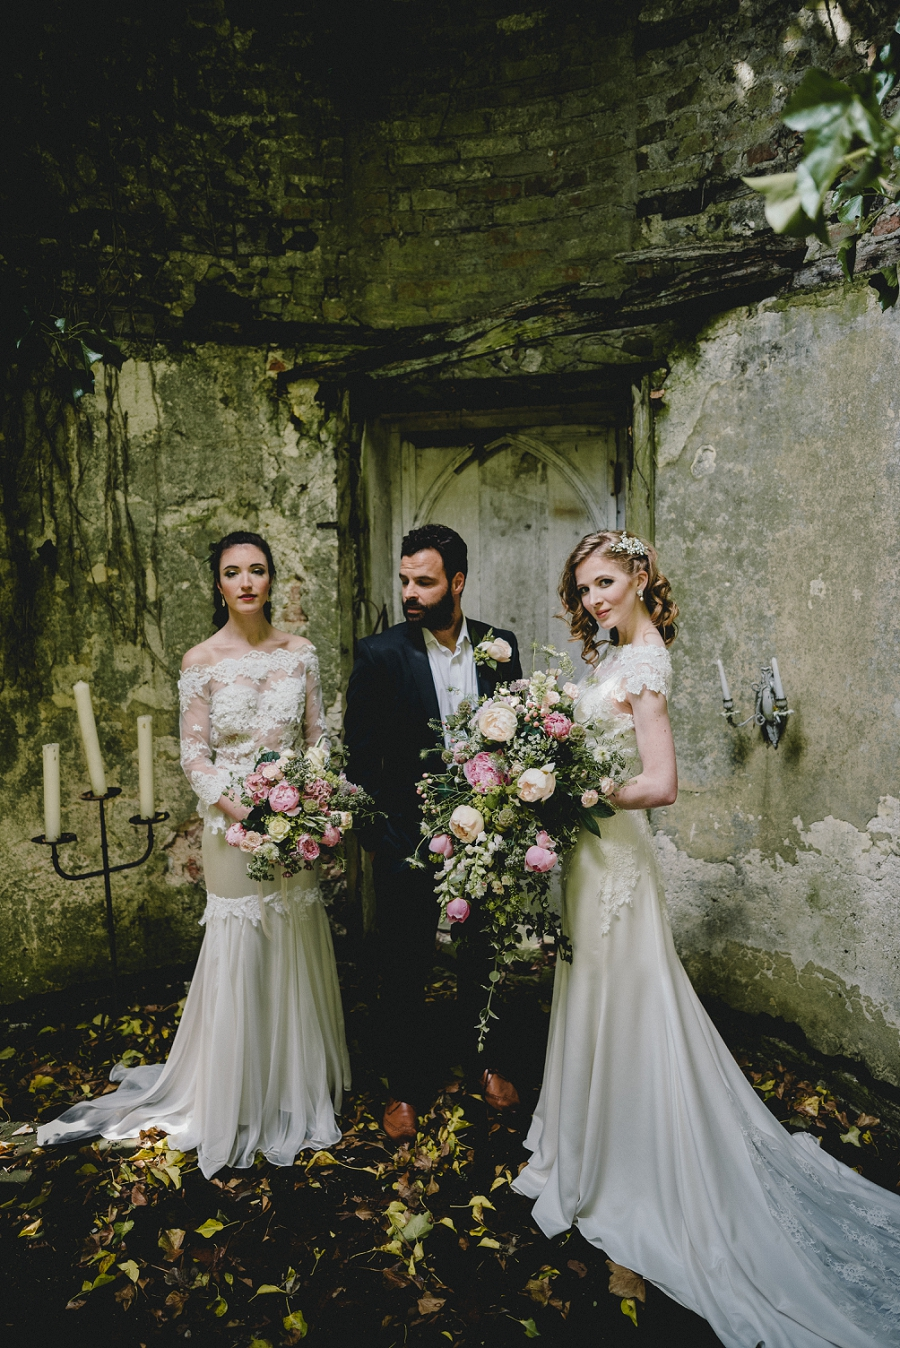 Heirloom wedding inspiration with Emily Andrews Events at Thurning Hall. Photo credit Benjamin Mathers Photography (15)